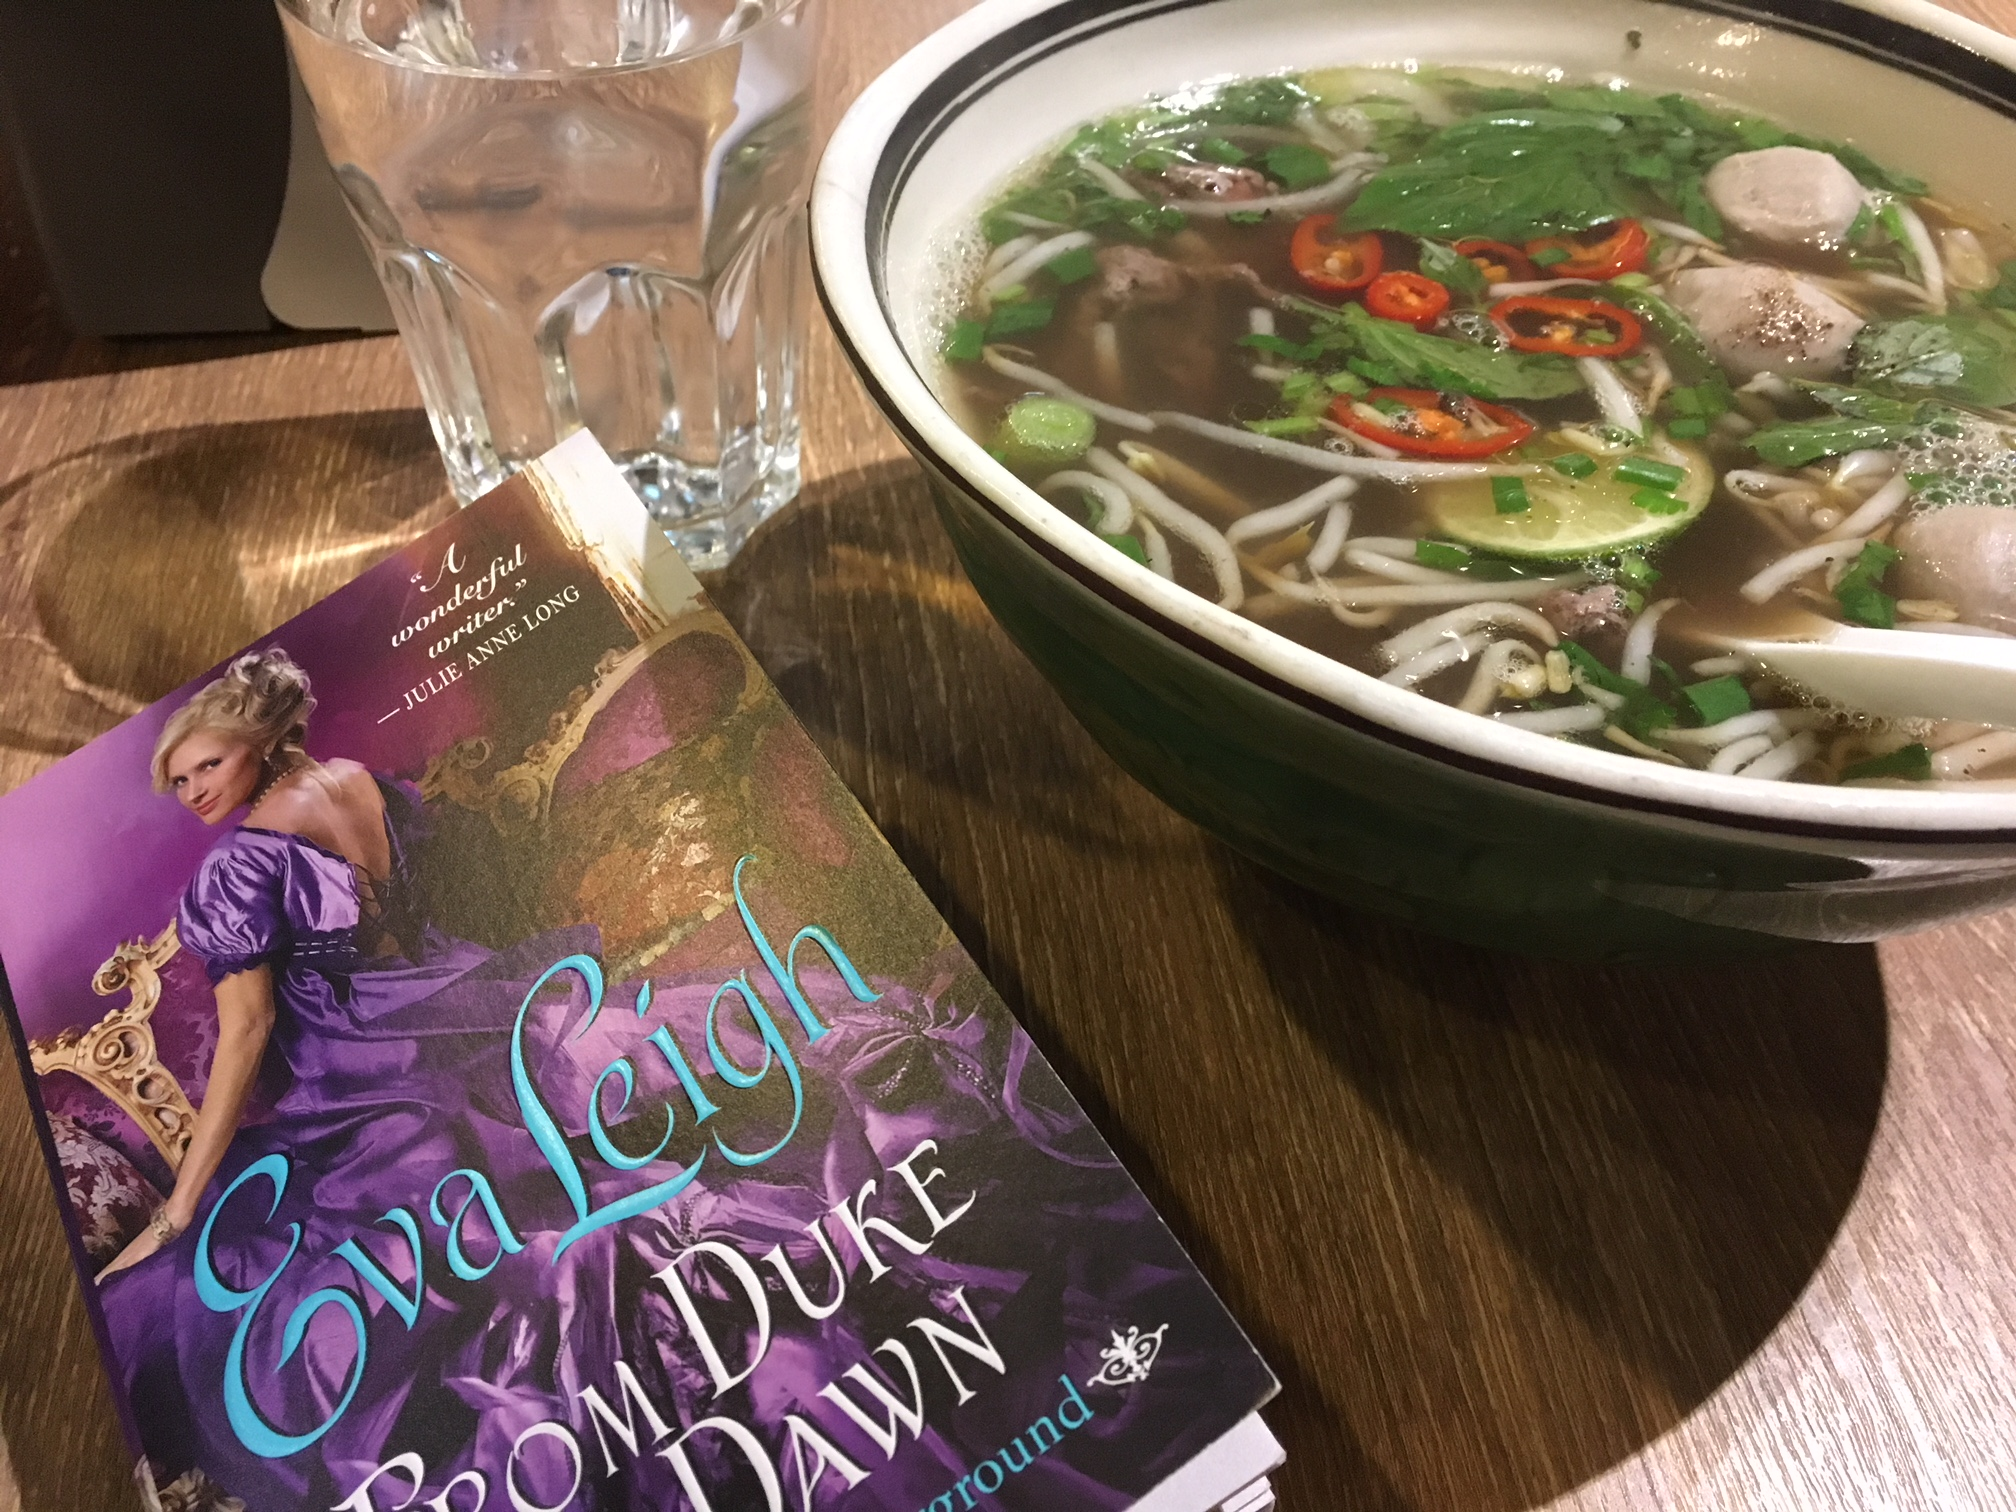 Nothing more delicious than herby pho with a yummy romance read.